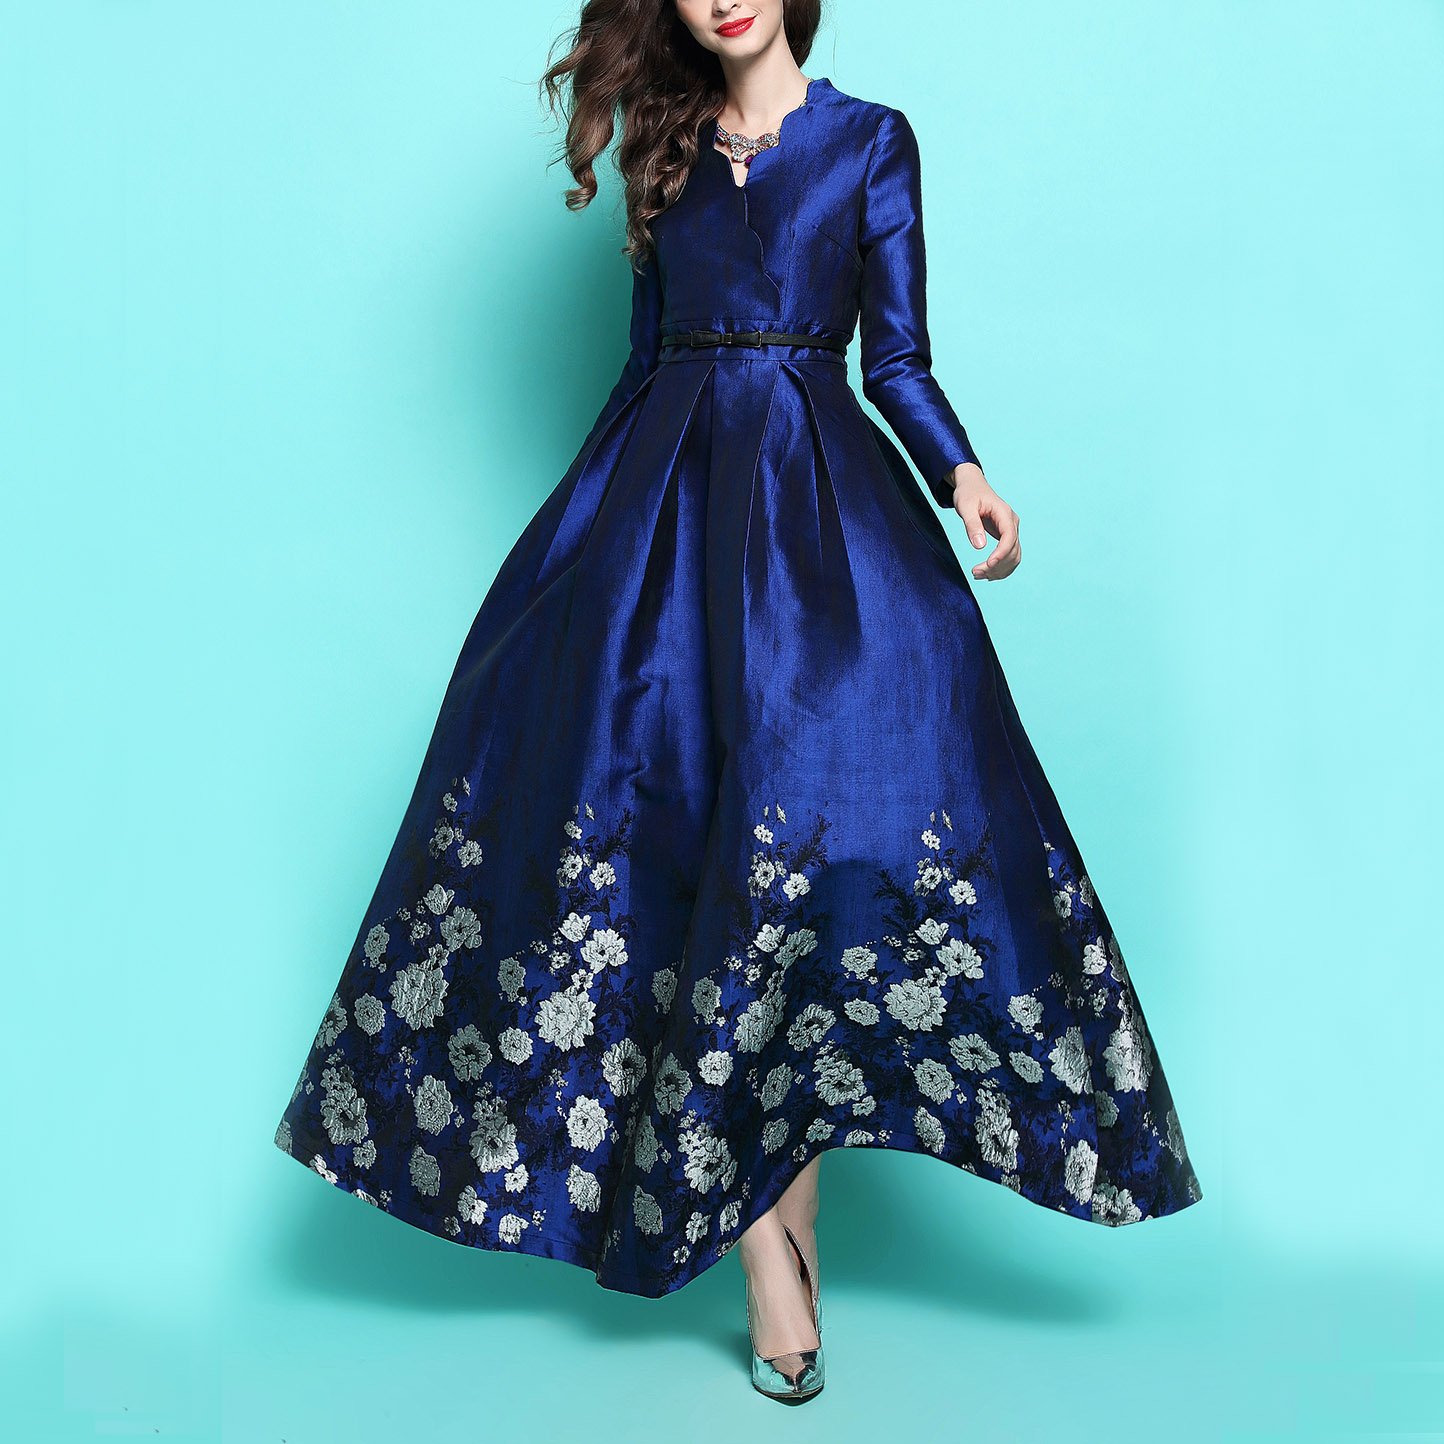 Buy Blue Winter Formal Dresses And Get Free Shipping On Aliexpress